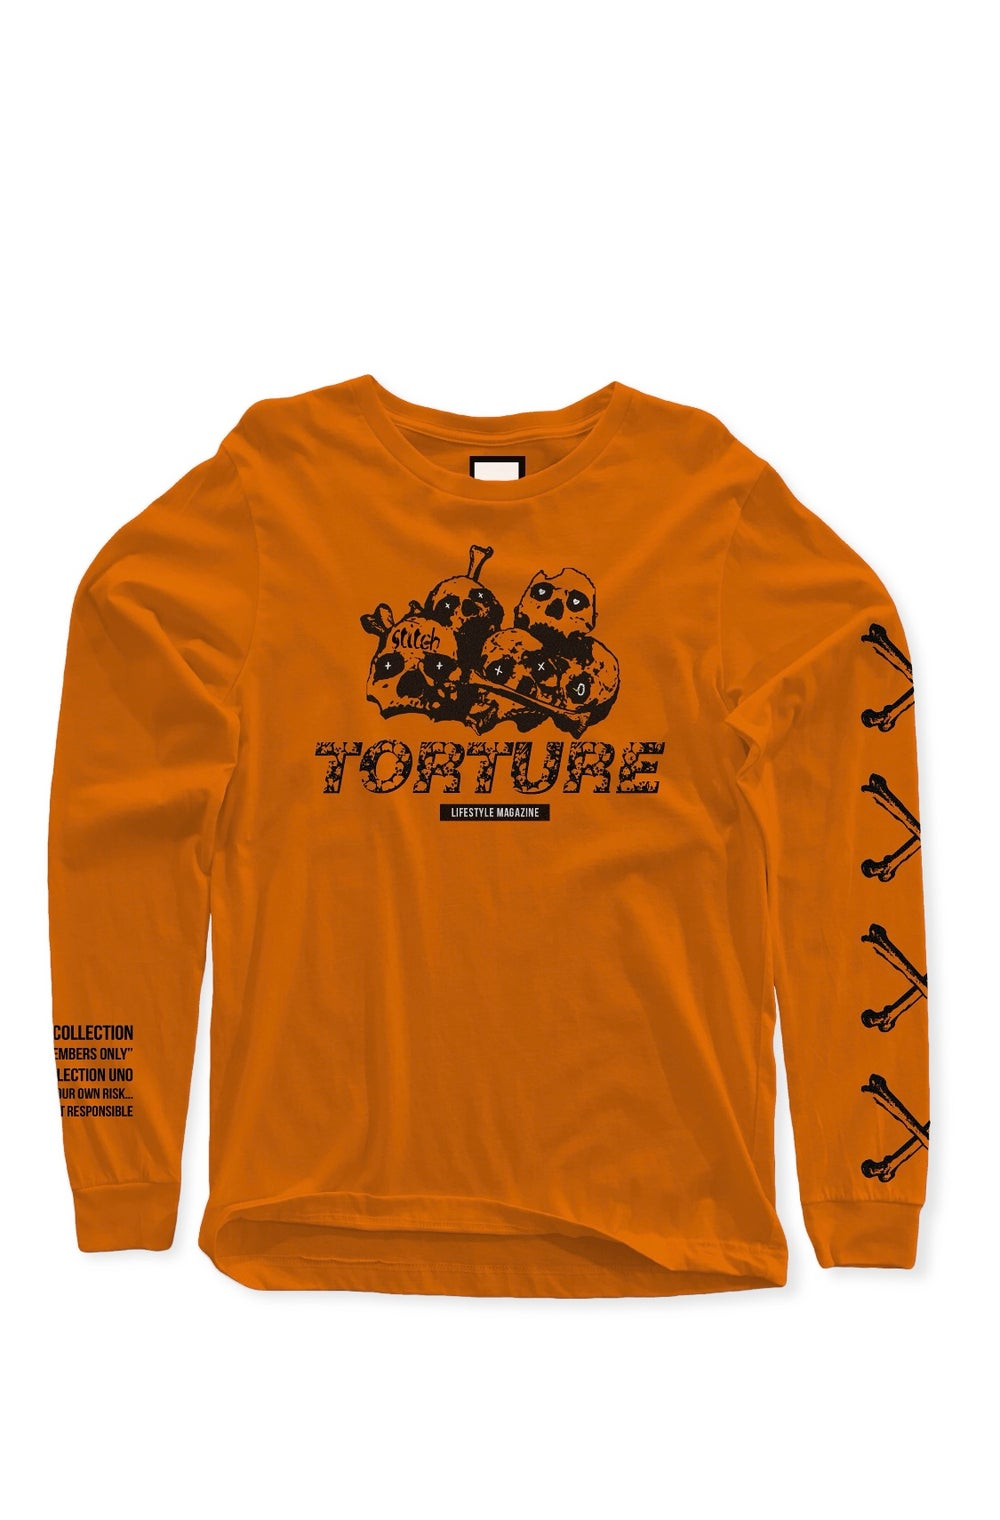 Image of TORTURE Lifestyle Magazine Long-Sleeve